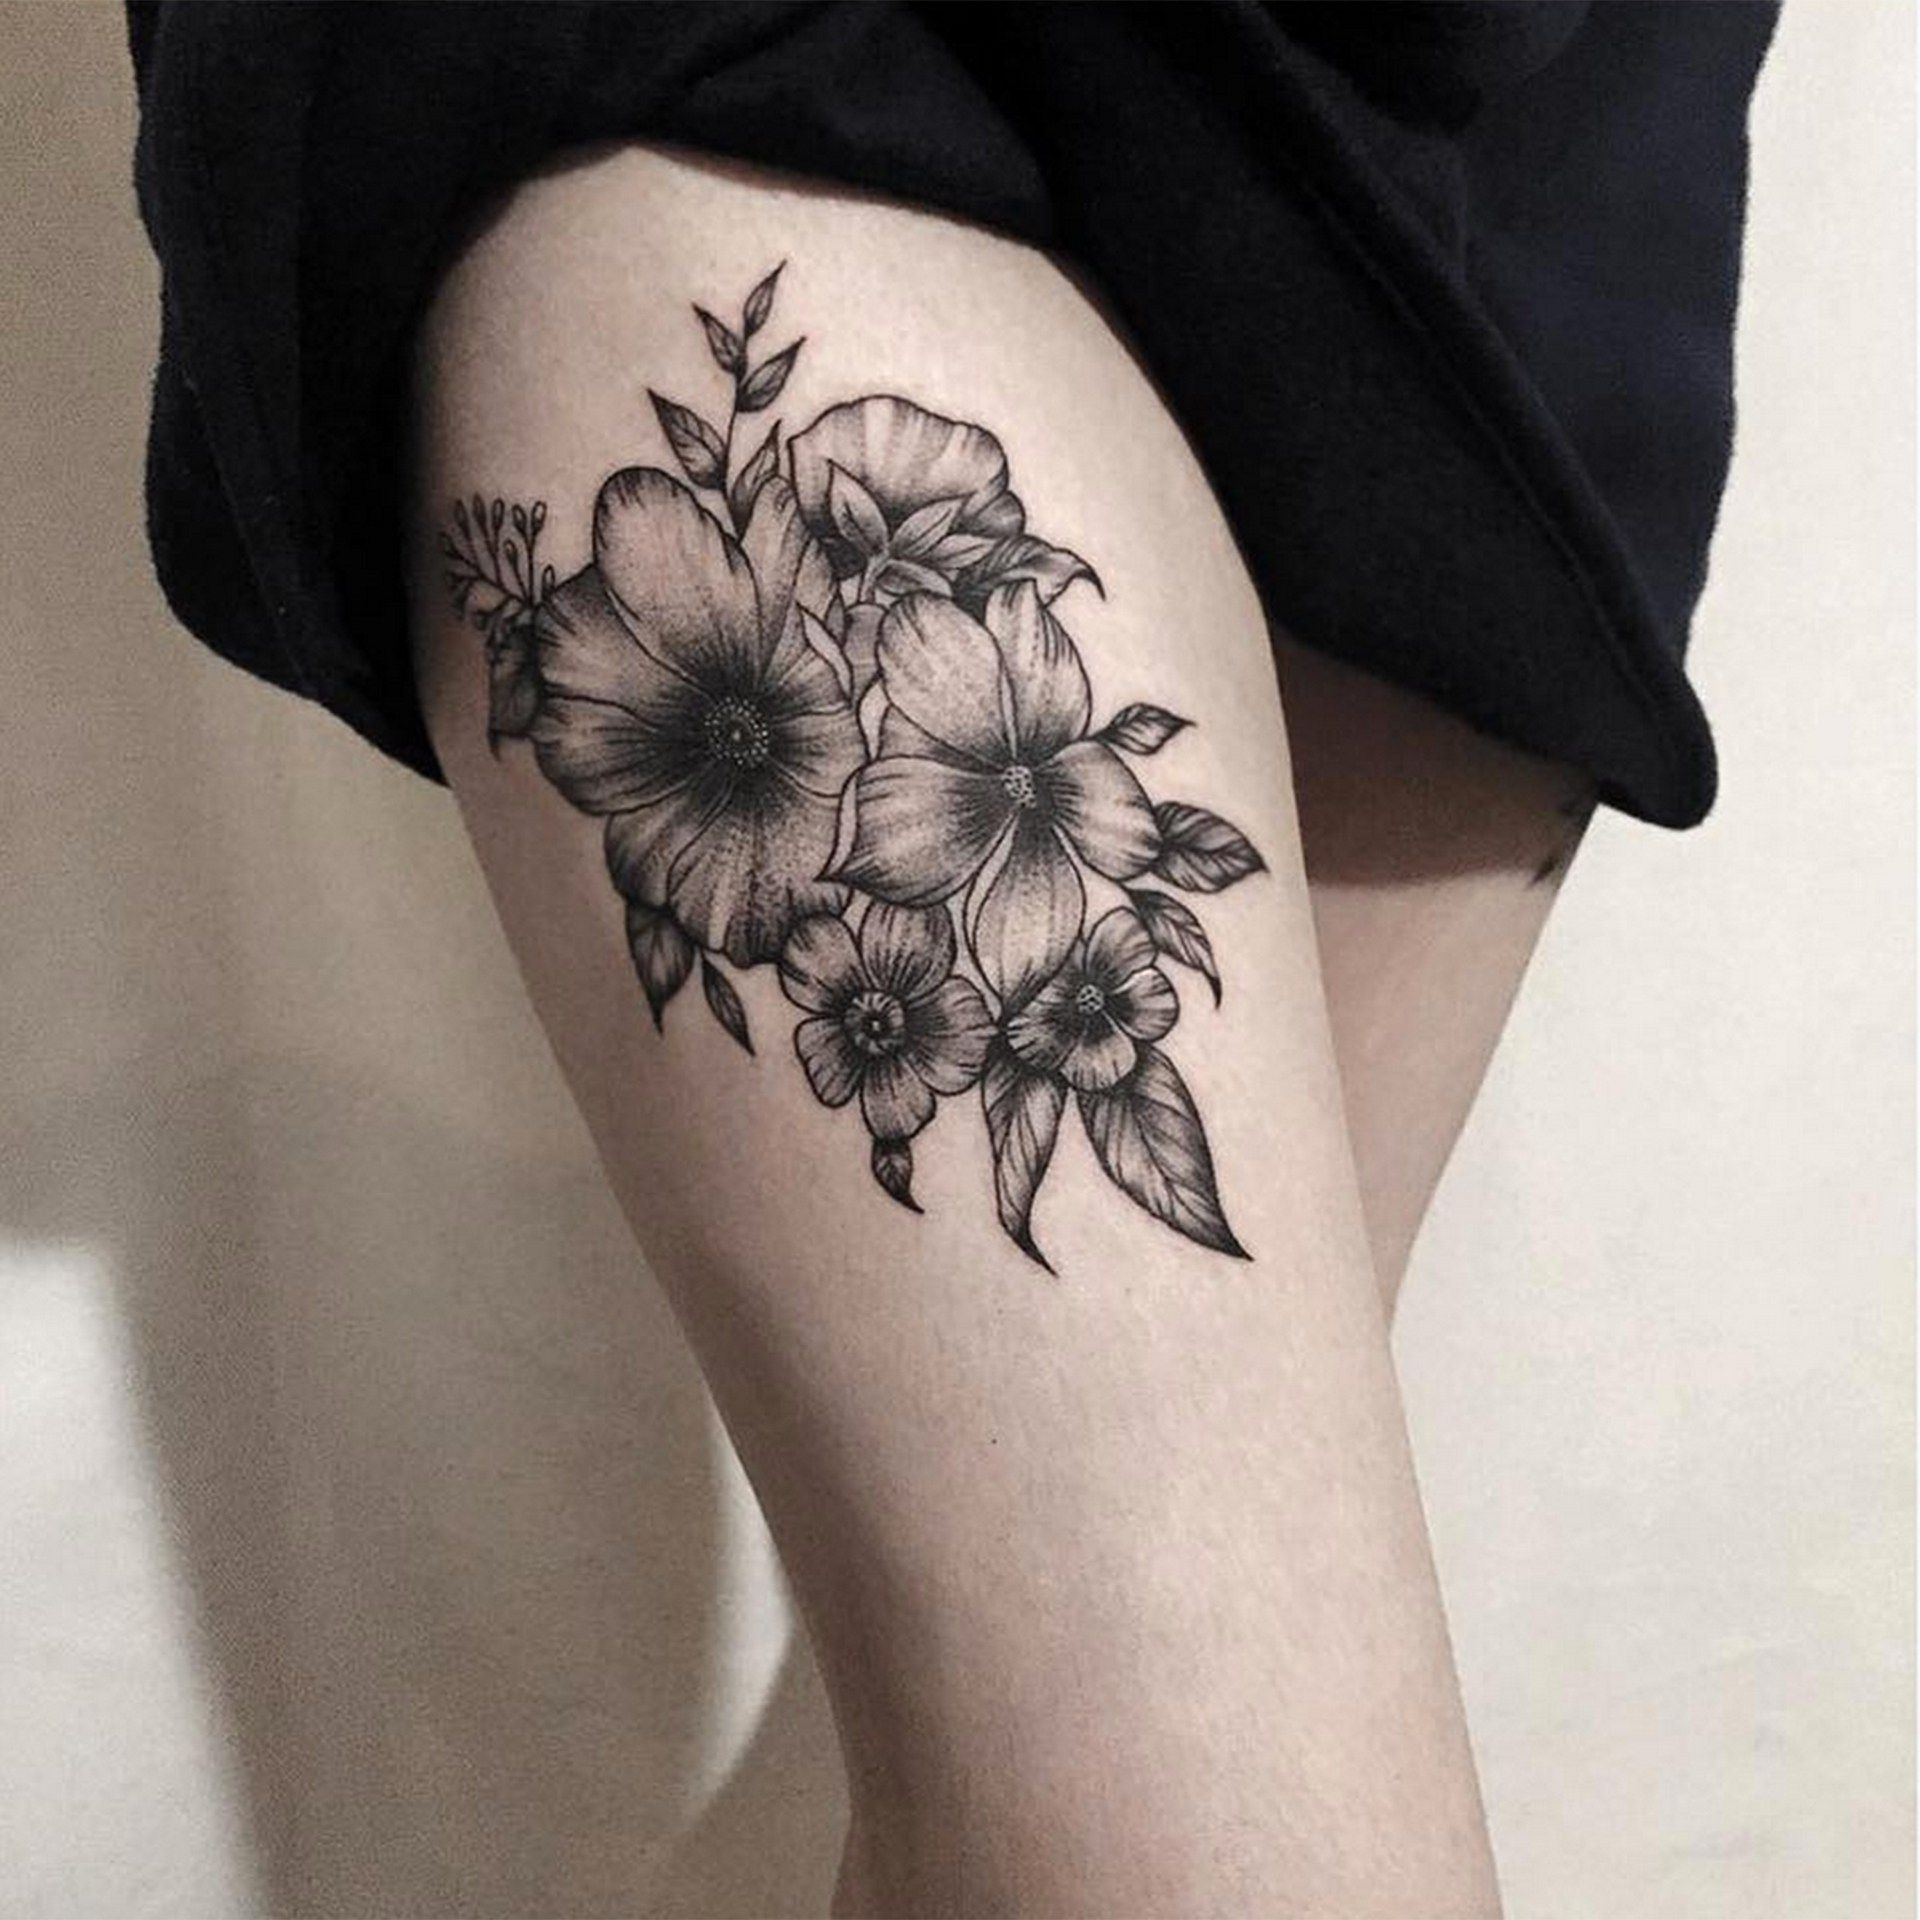 These beautiful small tattoo ideas will make you want to get inked